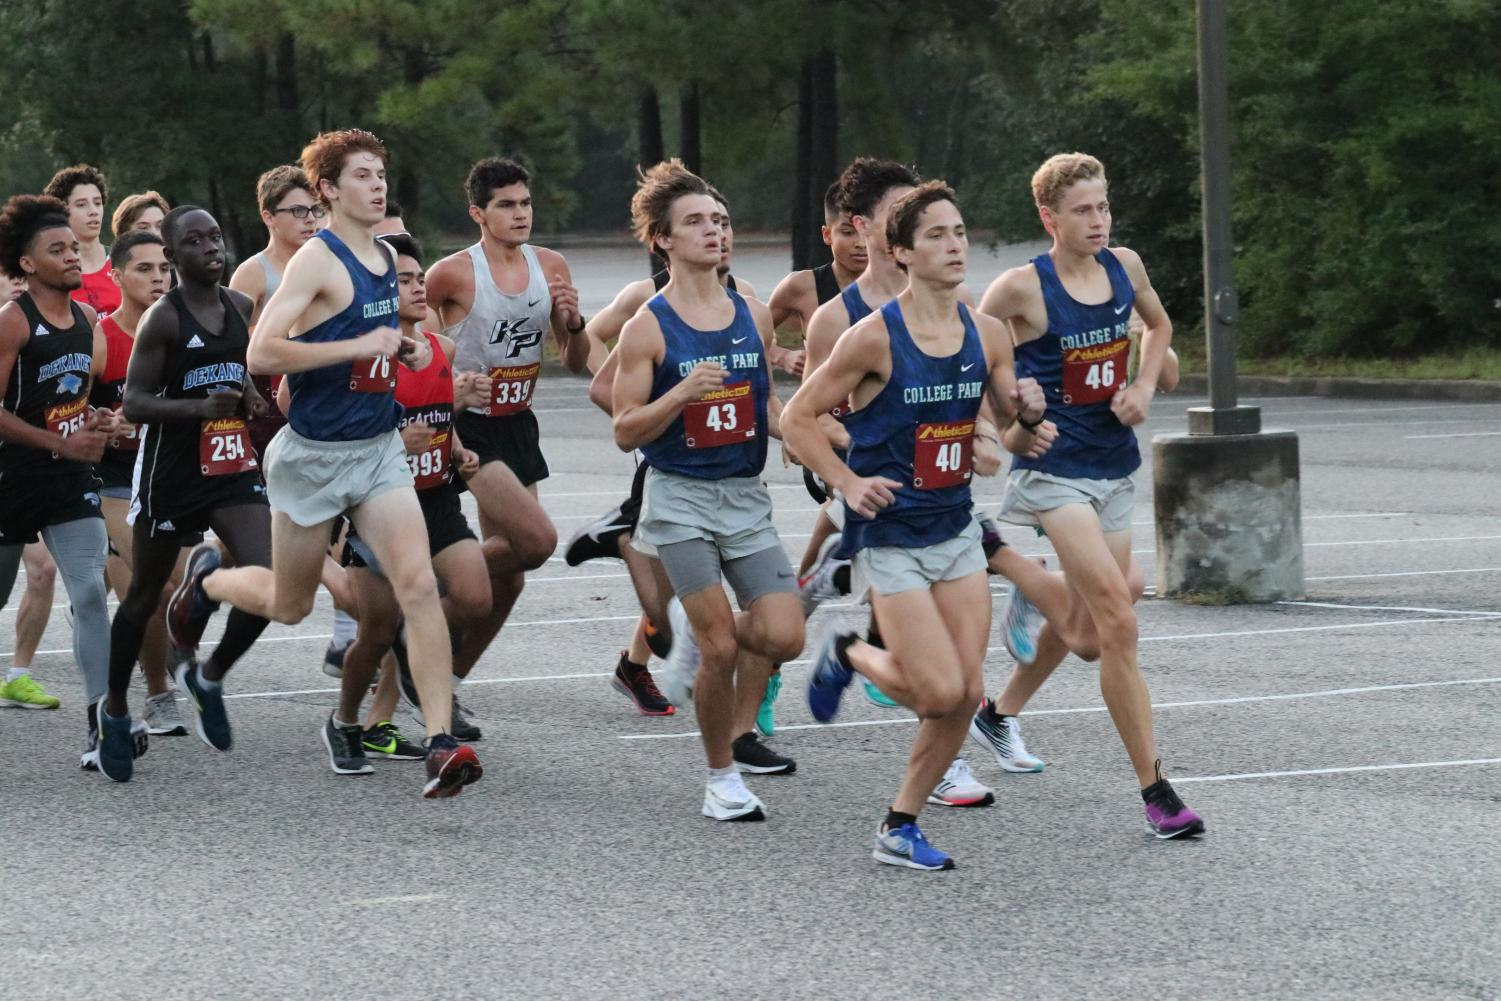 The CP runners take an early lead on their opponents during a meet.